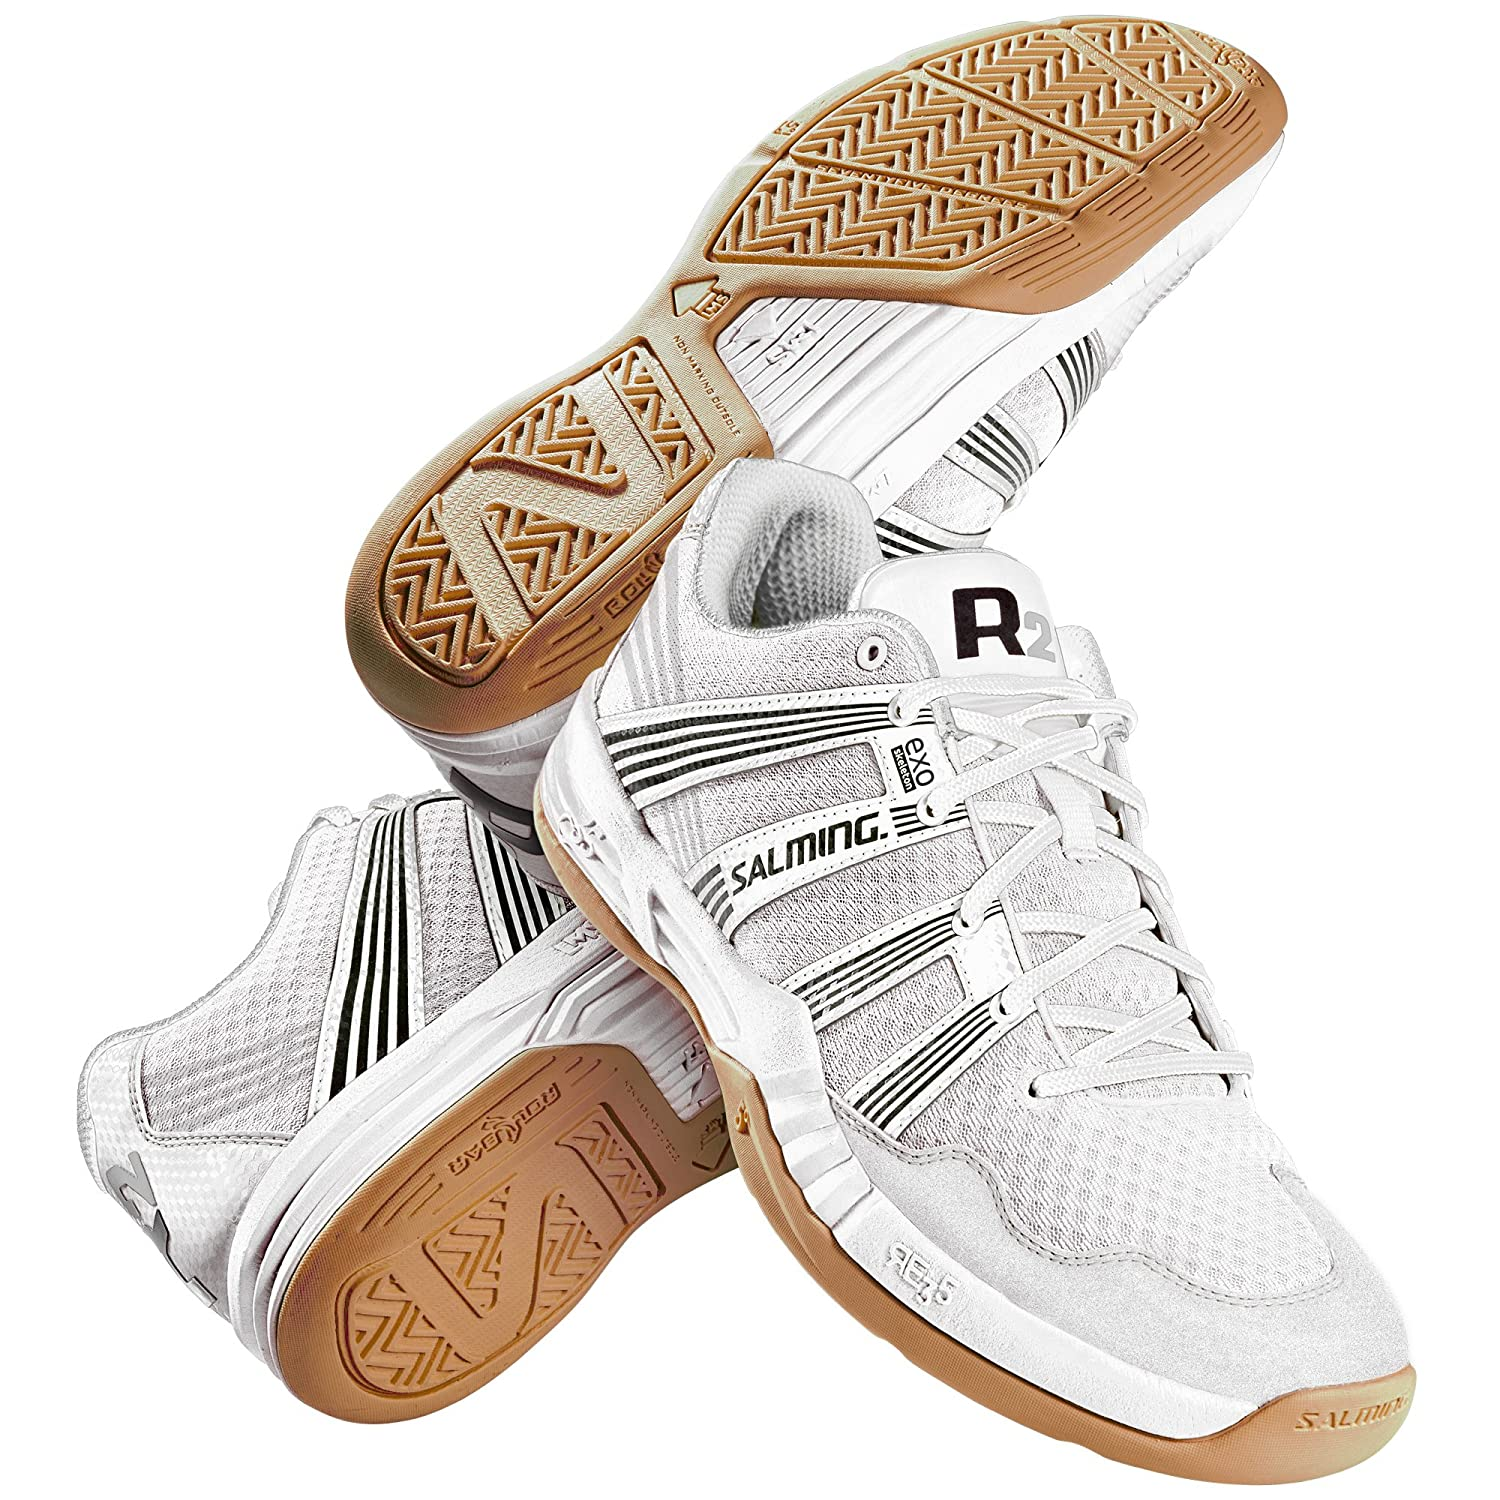 Salming Race R2 3.0 White Squash Shoes